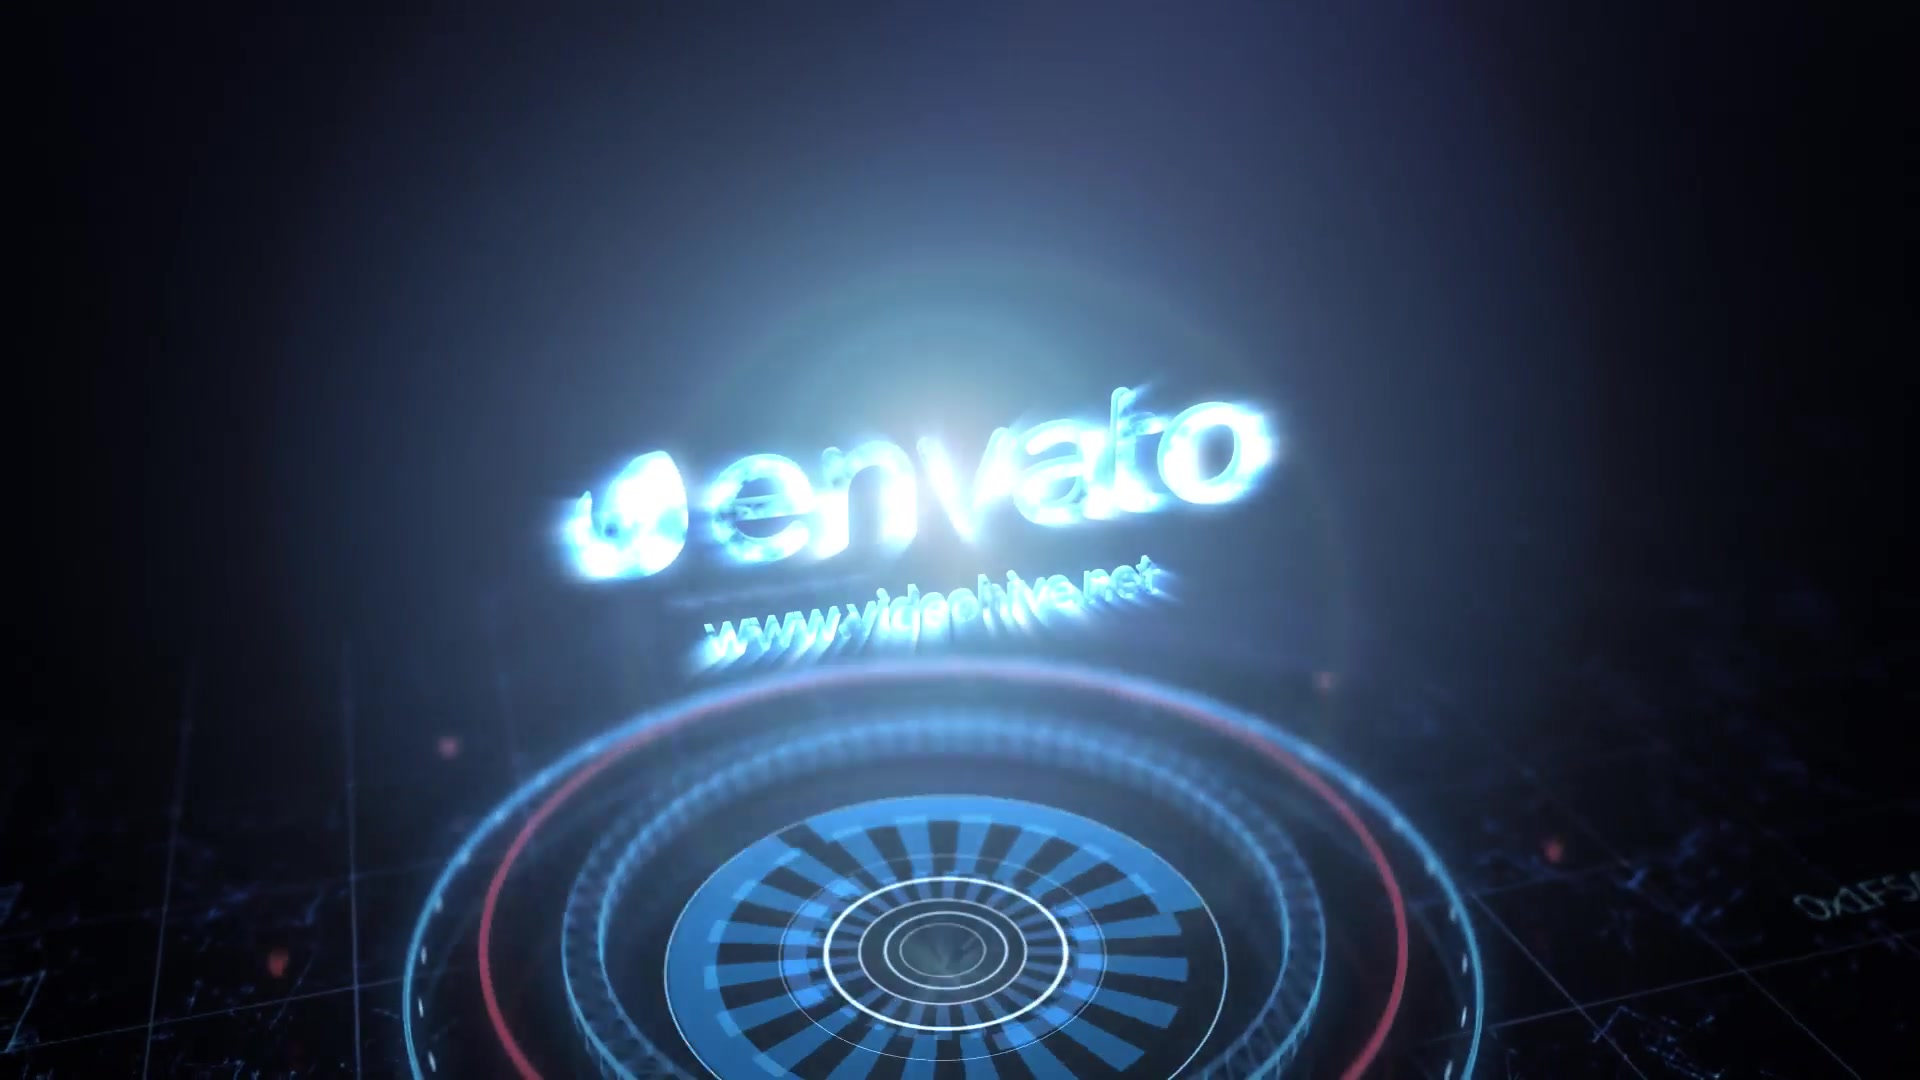 Futuristic Energy Circles Logo - Download Videohive 15092126